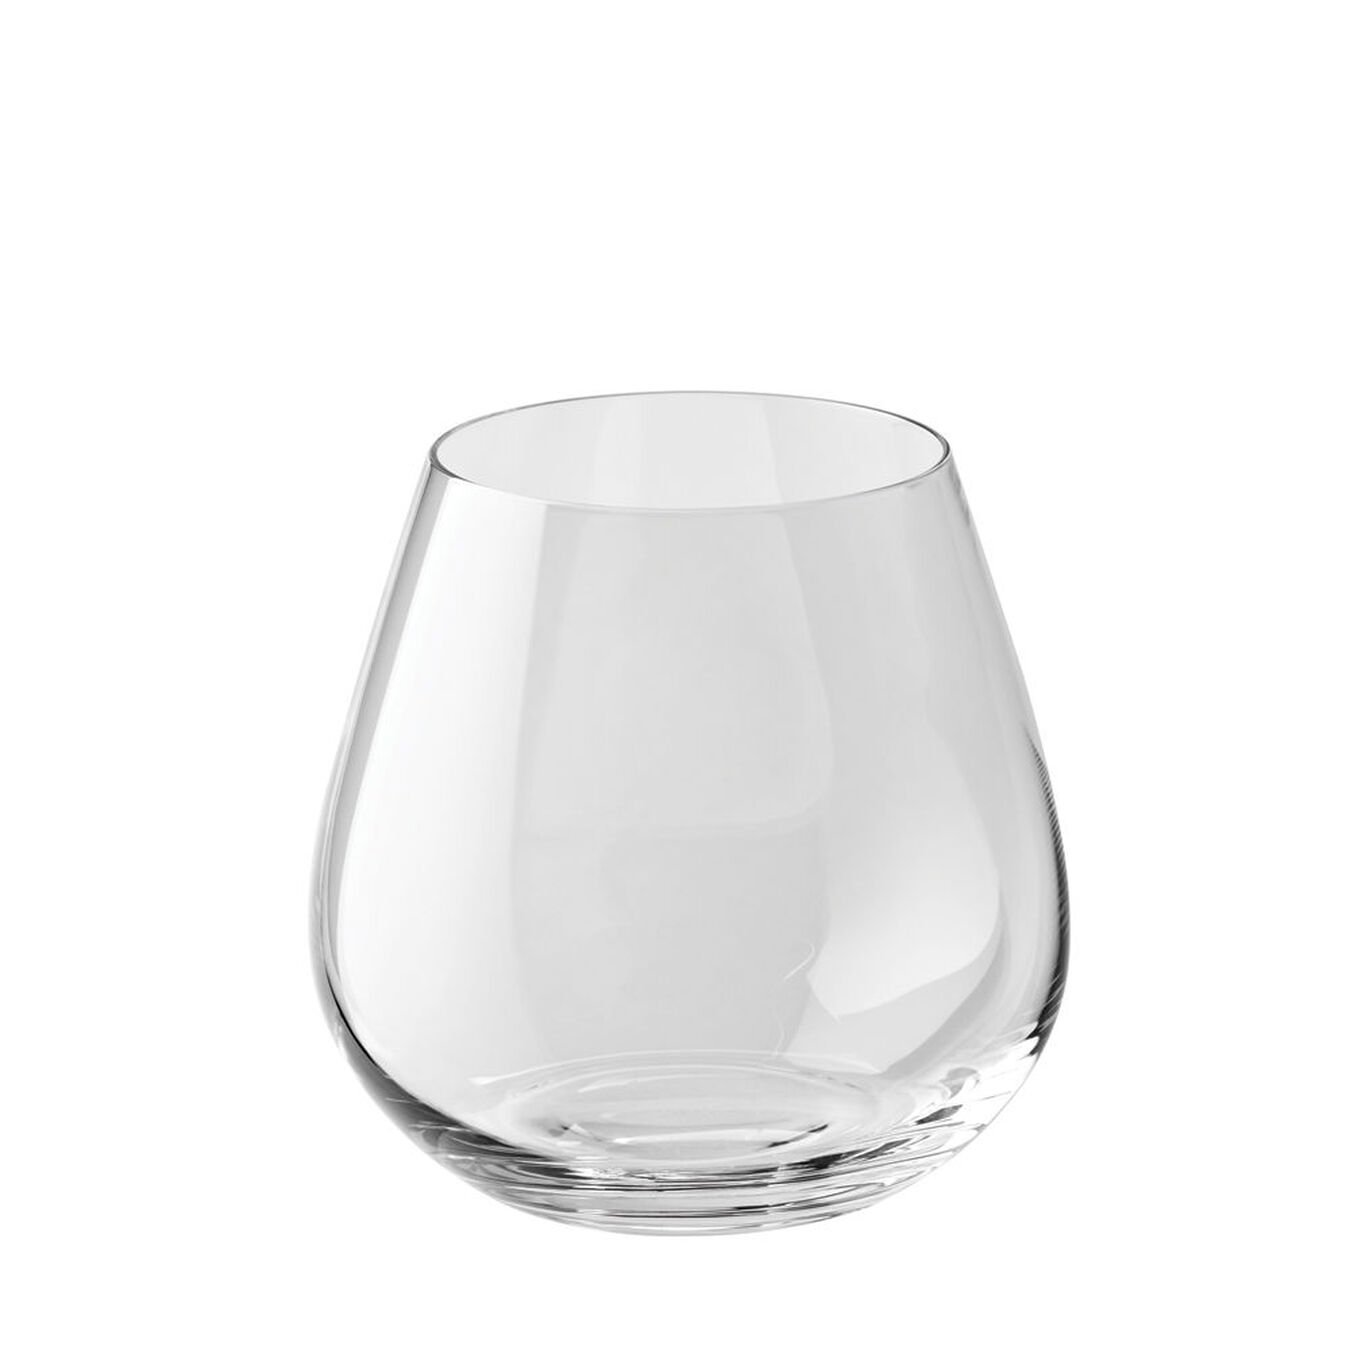 6-pc Whisky/Stemless Red Glass, ,,large 1